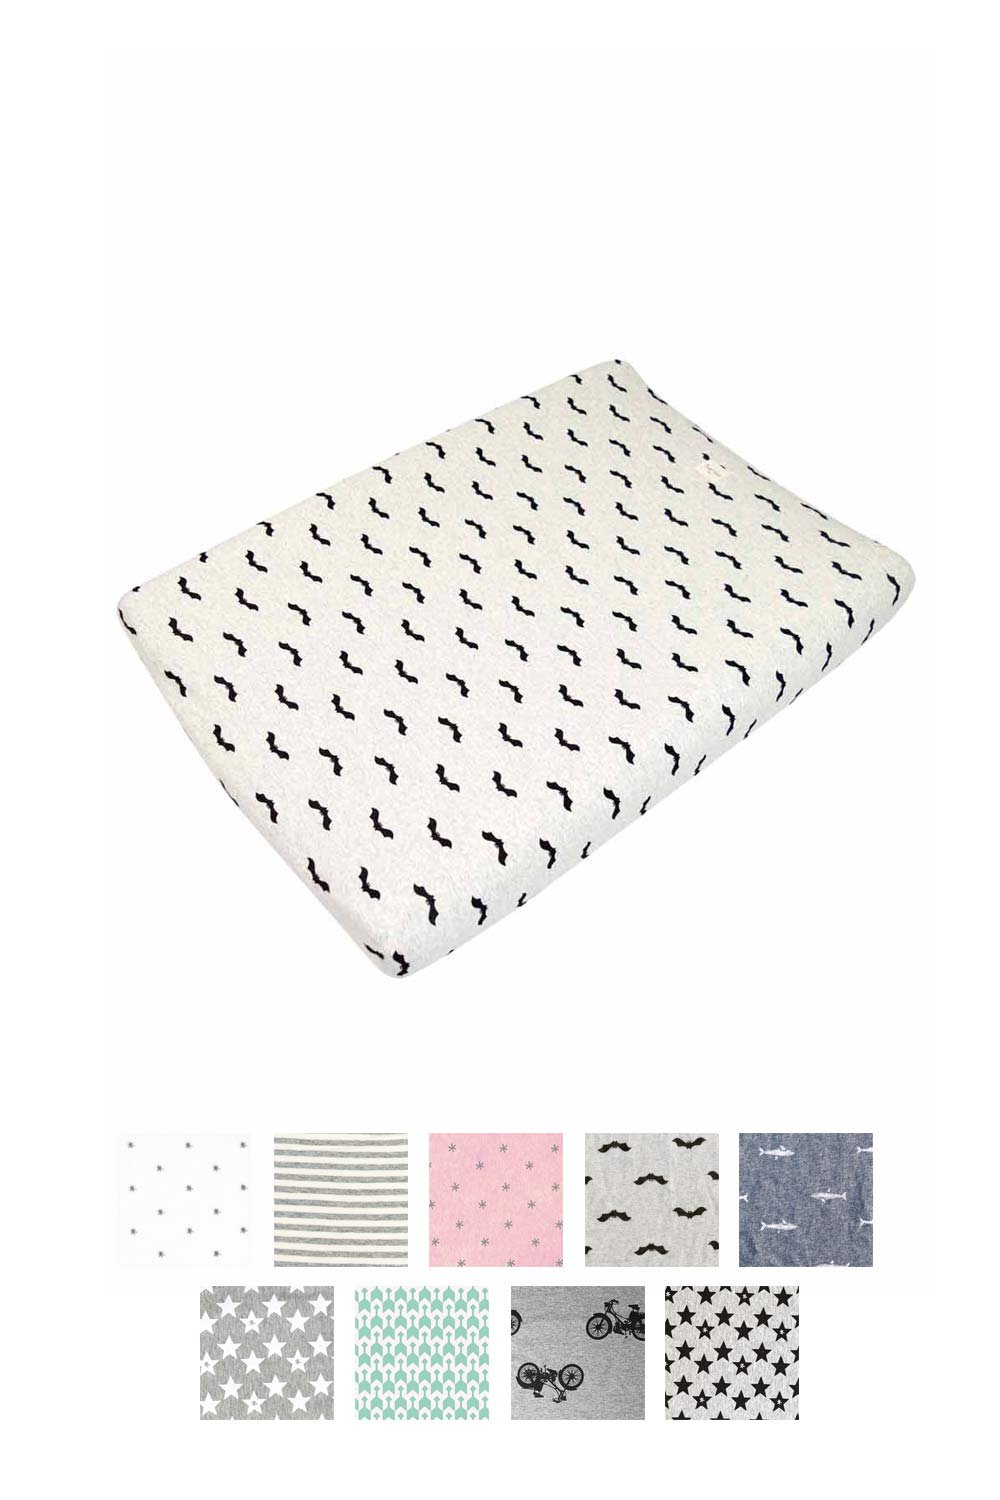 Breathable and Soft Fundas BCN F11-0399- Cotton Changing Mat Cover 70x50 cm Elastic and Adaptable Lucky Swallow Print